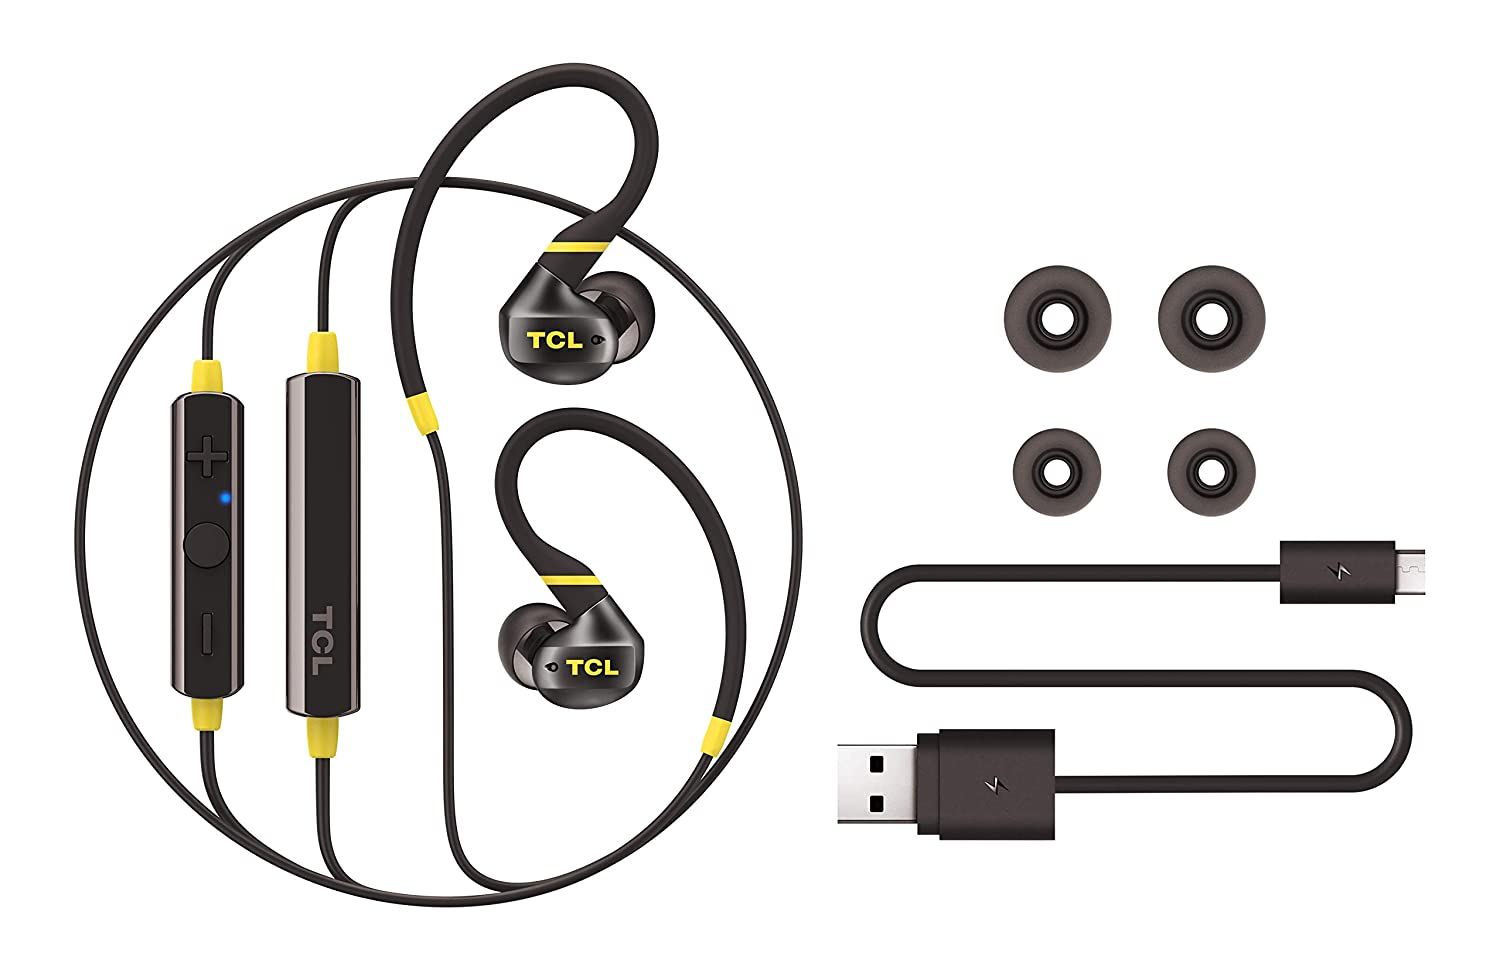 TCL ACTV100BT in-Ear Active Noise Isolating Wireless Headphones with Built-in Mic Black